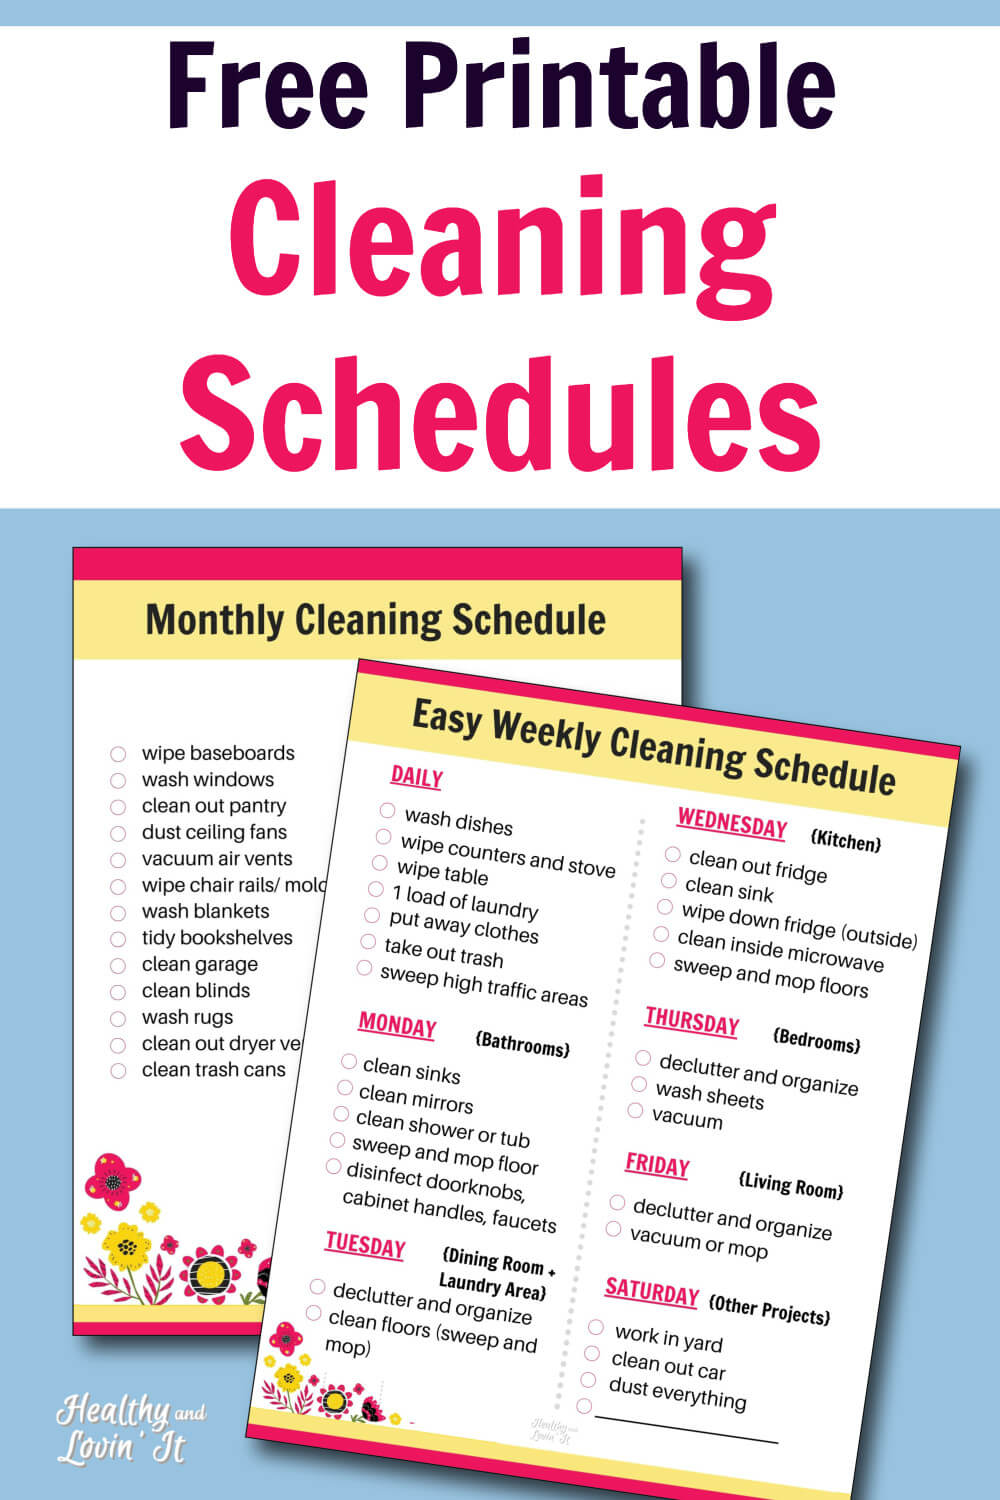 Free Printable Cleaning Schedule Daily Weekly And Monthly Checklists